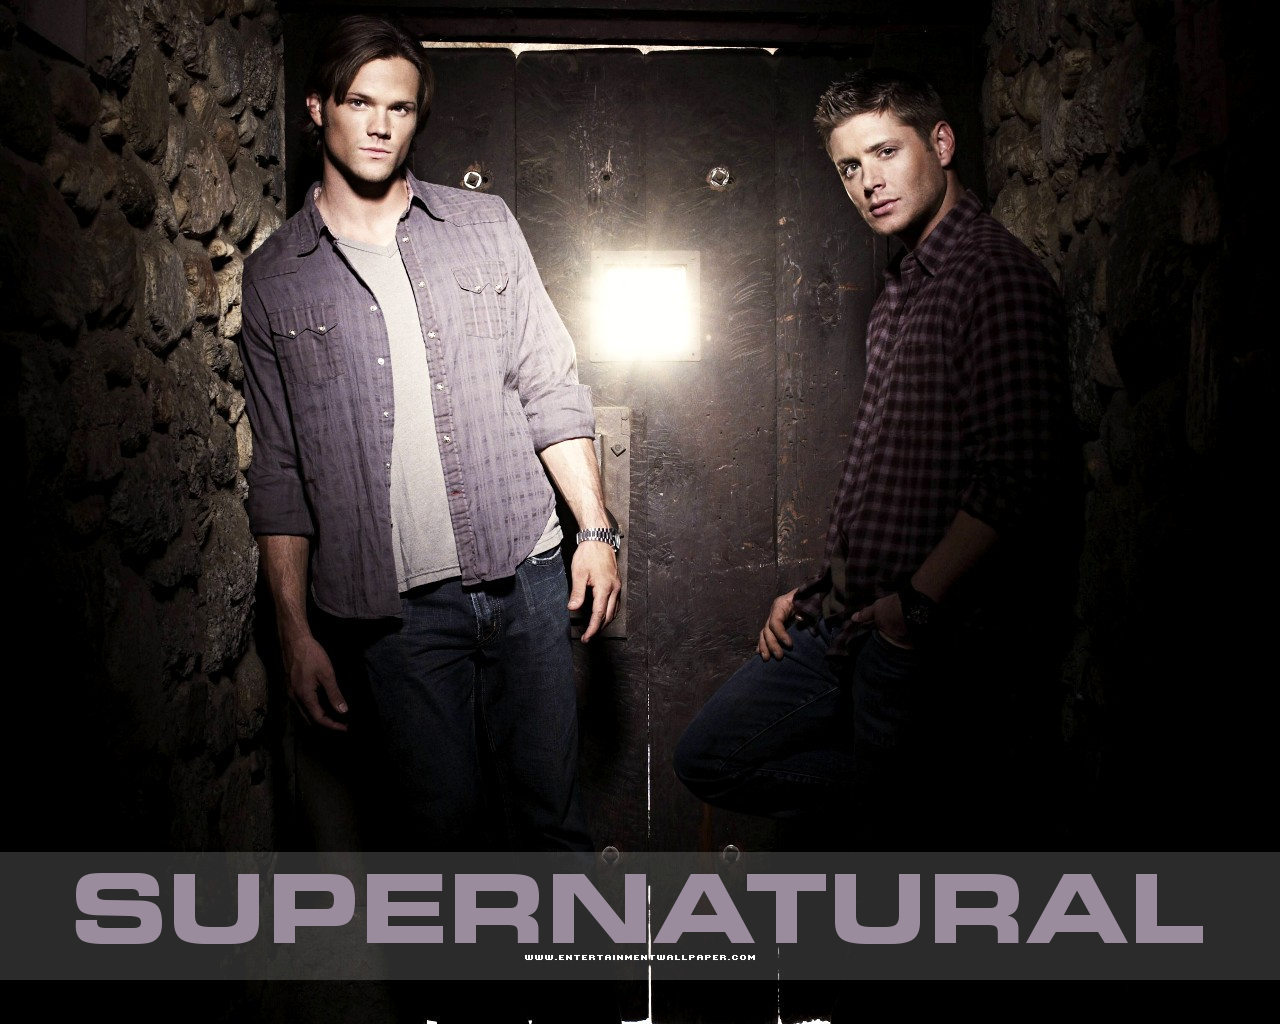 Download Free Wallpapers: Supernatural Wallpapers